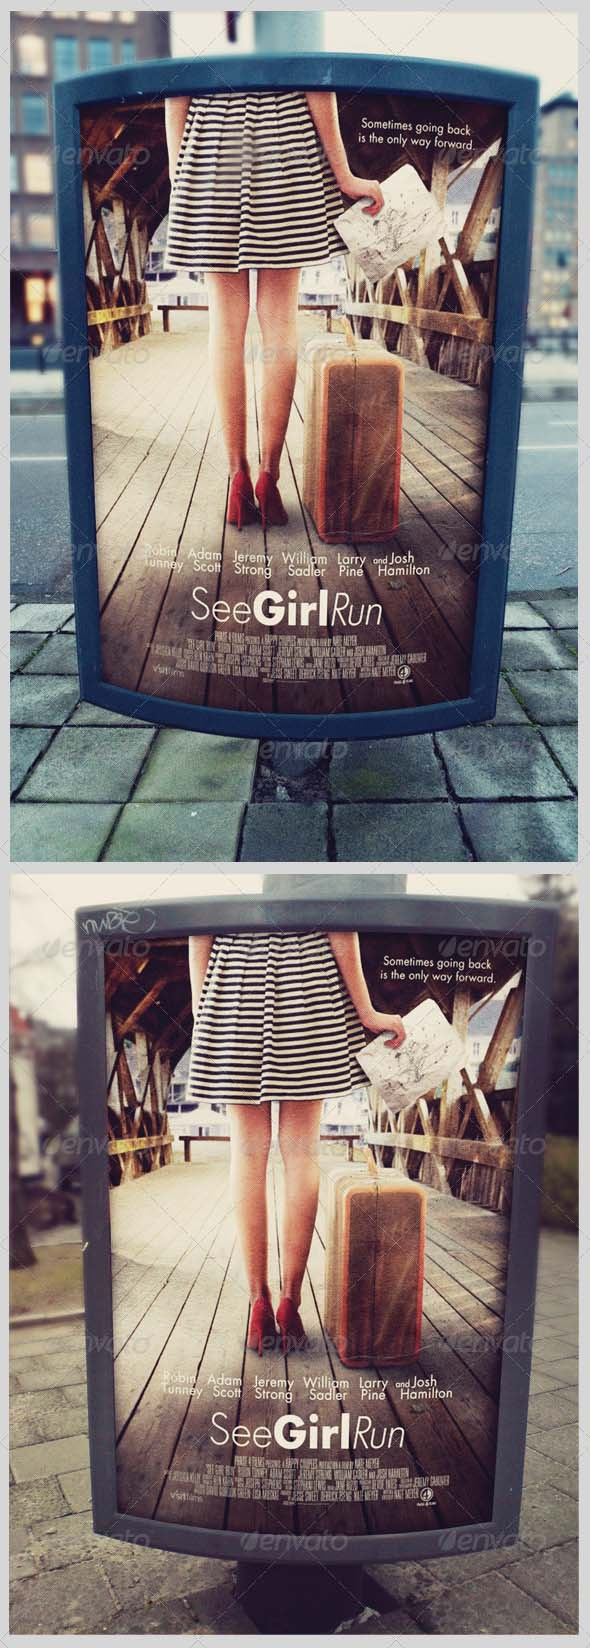 Outdoor Poster Sign Mockup Templates